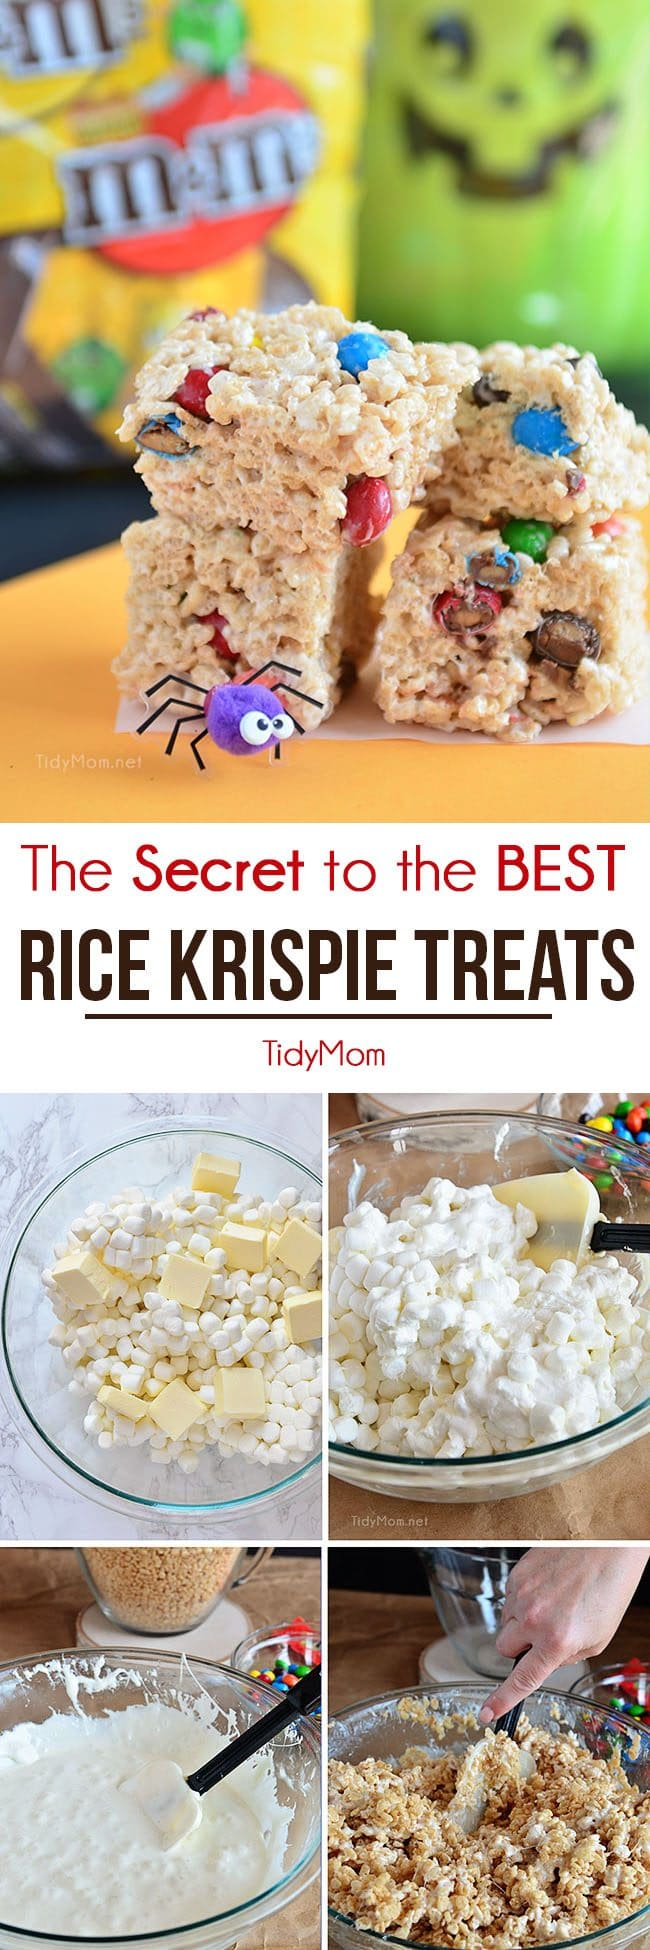 How to make the best sweet sticky perfect rice krispie treats at home!! Any easy recipe, anyone can follow! CLICK TO GET THE SECRET TO THE BEST RICE KRISPIE TREATS